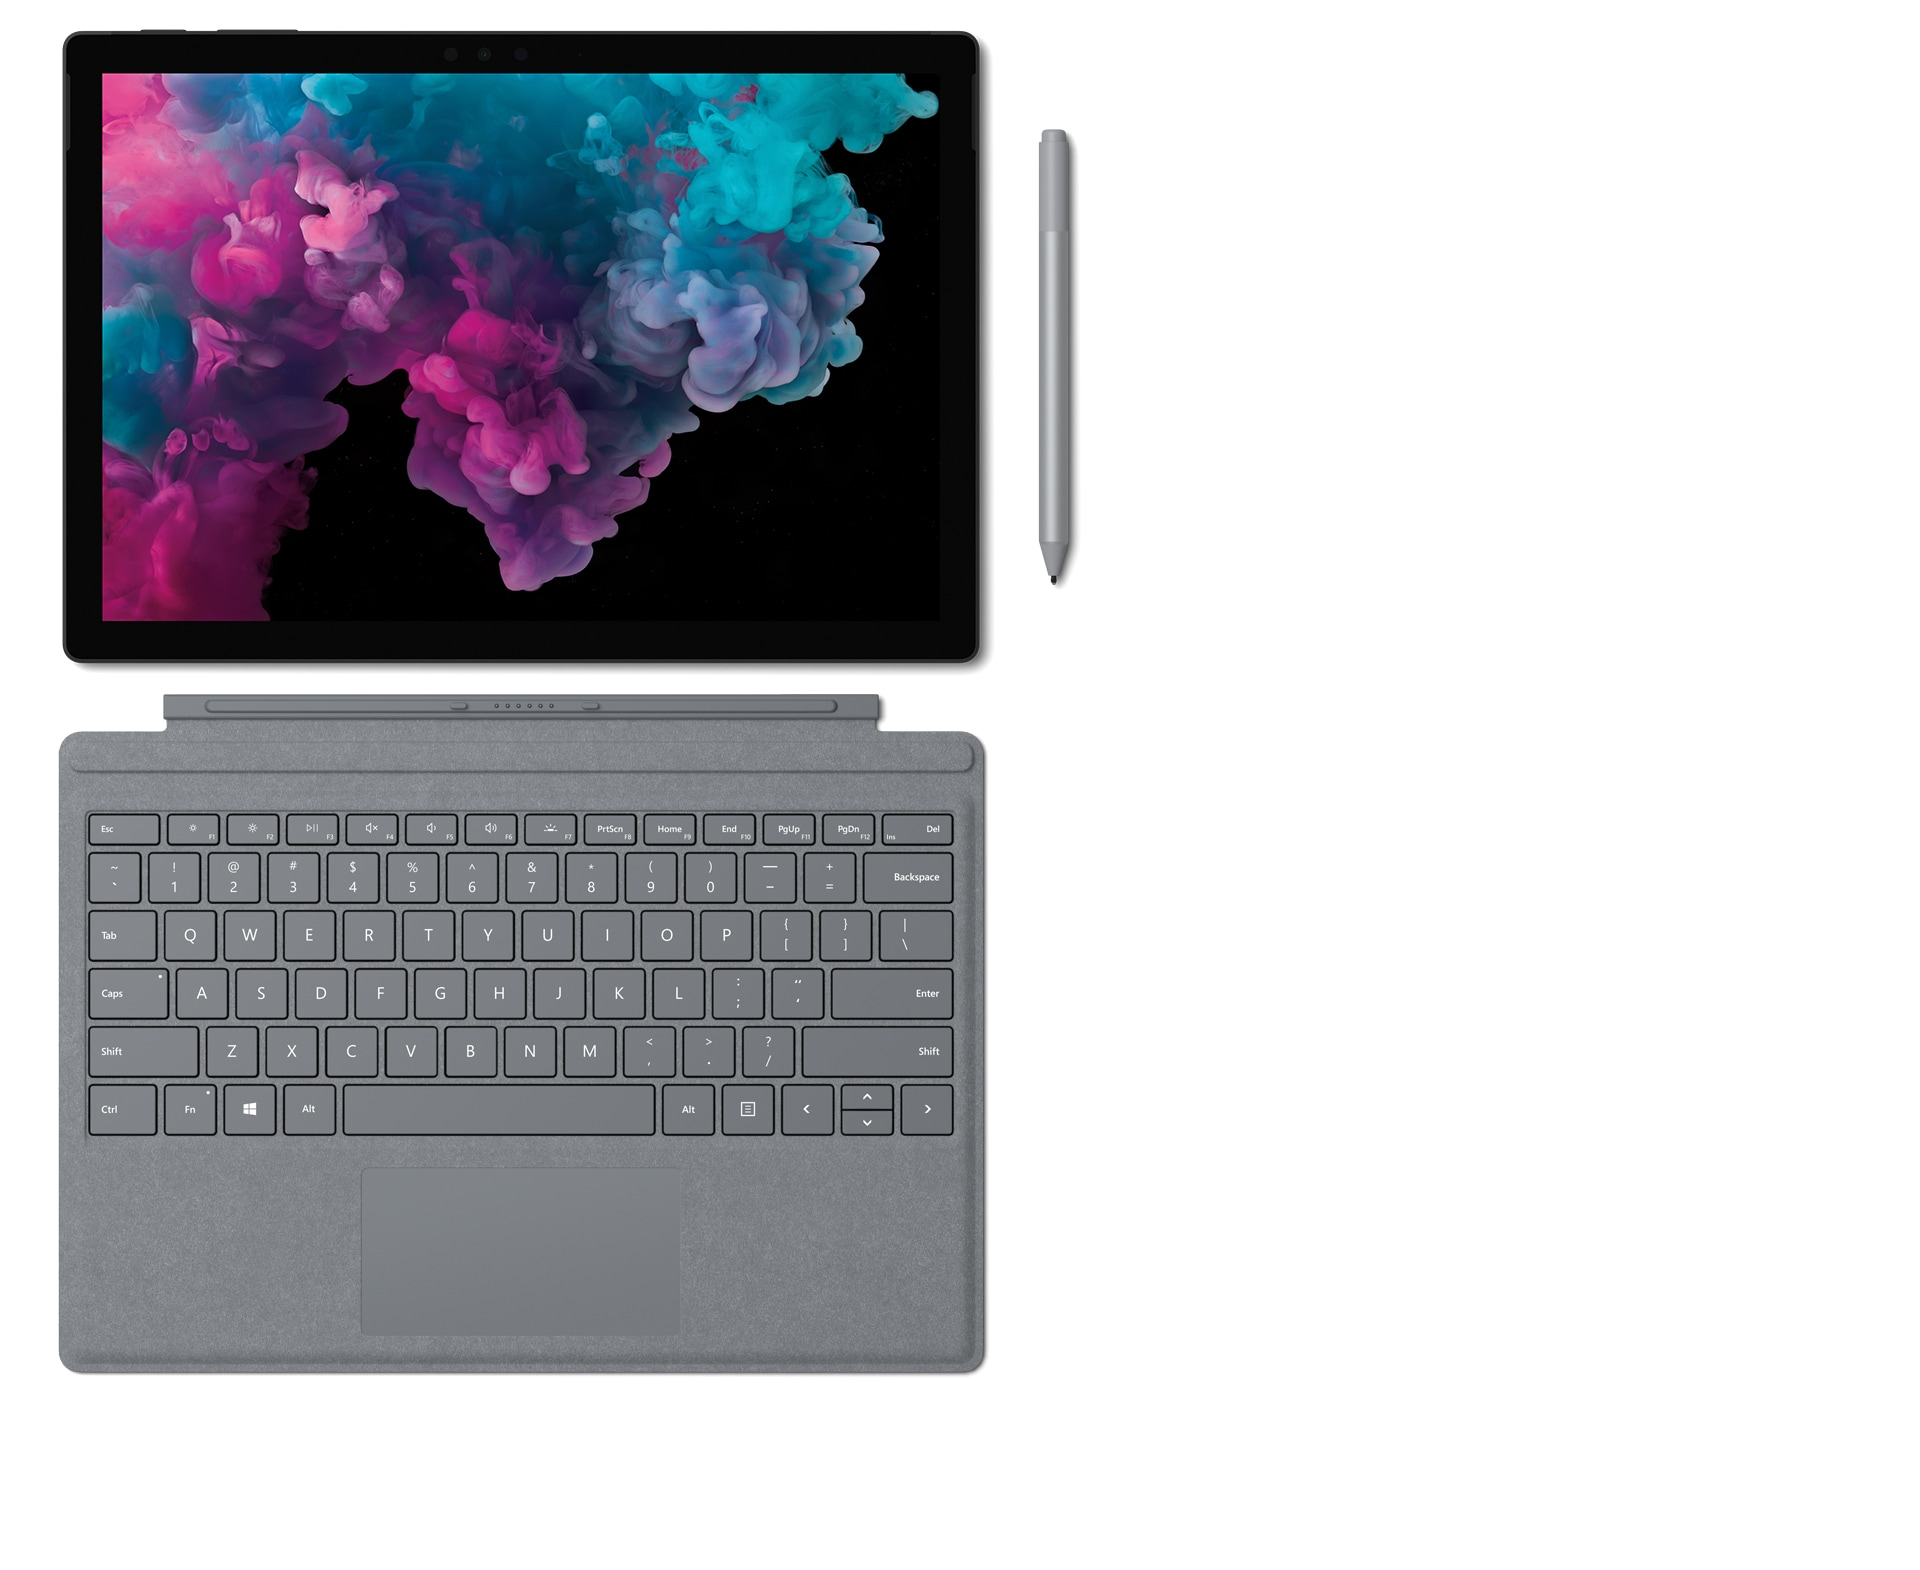 Surface Pro 6 with Surface Type Cover, Surface Pen and Surface Arc Mouse.